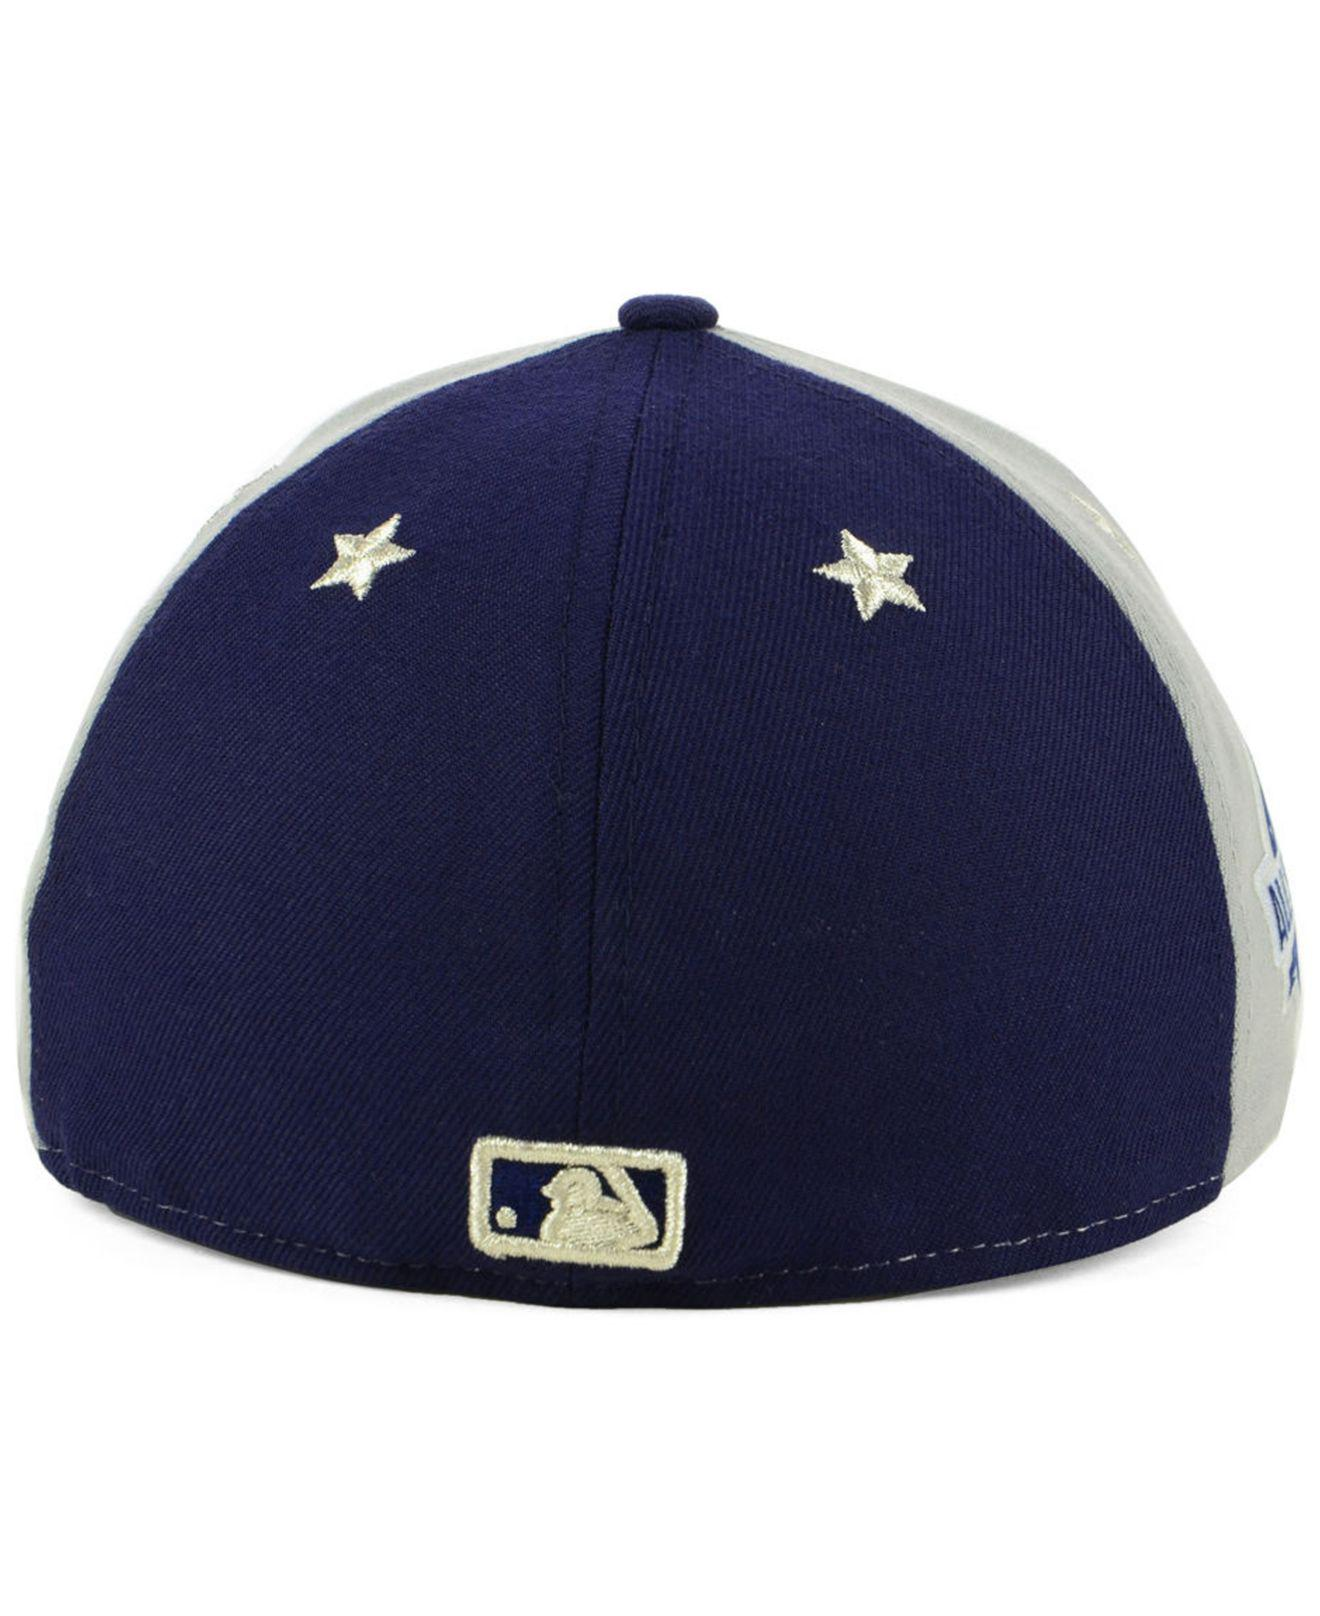 ... San Diego Padres All Star Game Patch Low Profile 59fifty Fitted Cap 2018.  View fullscreen a1082189538f